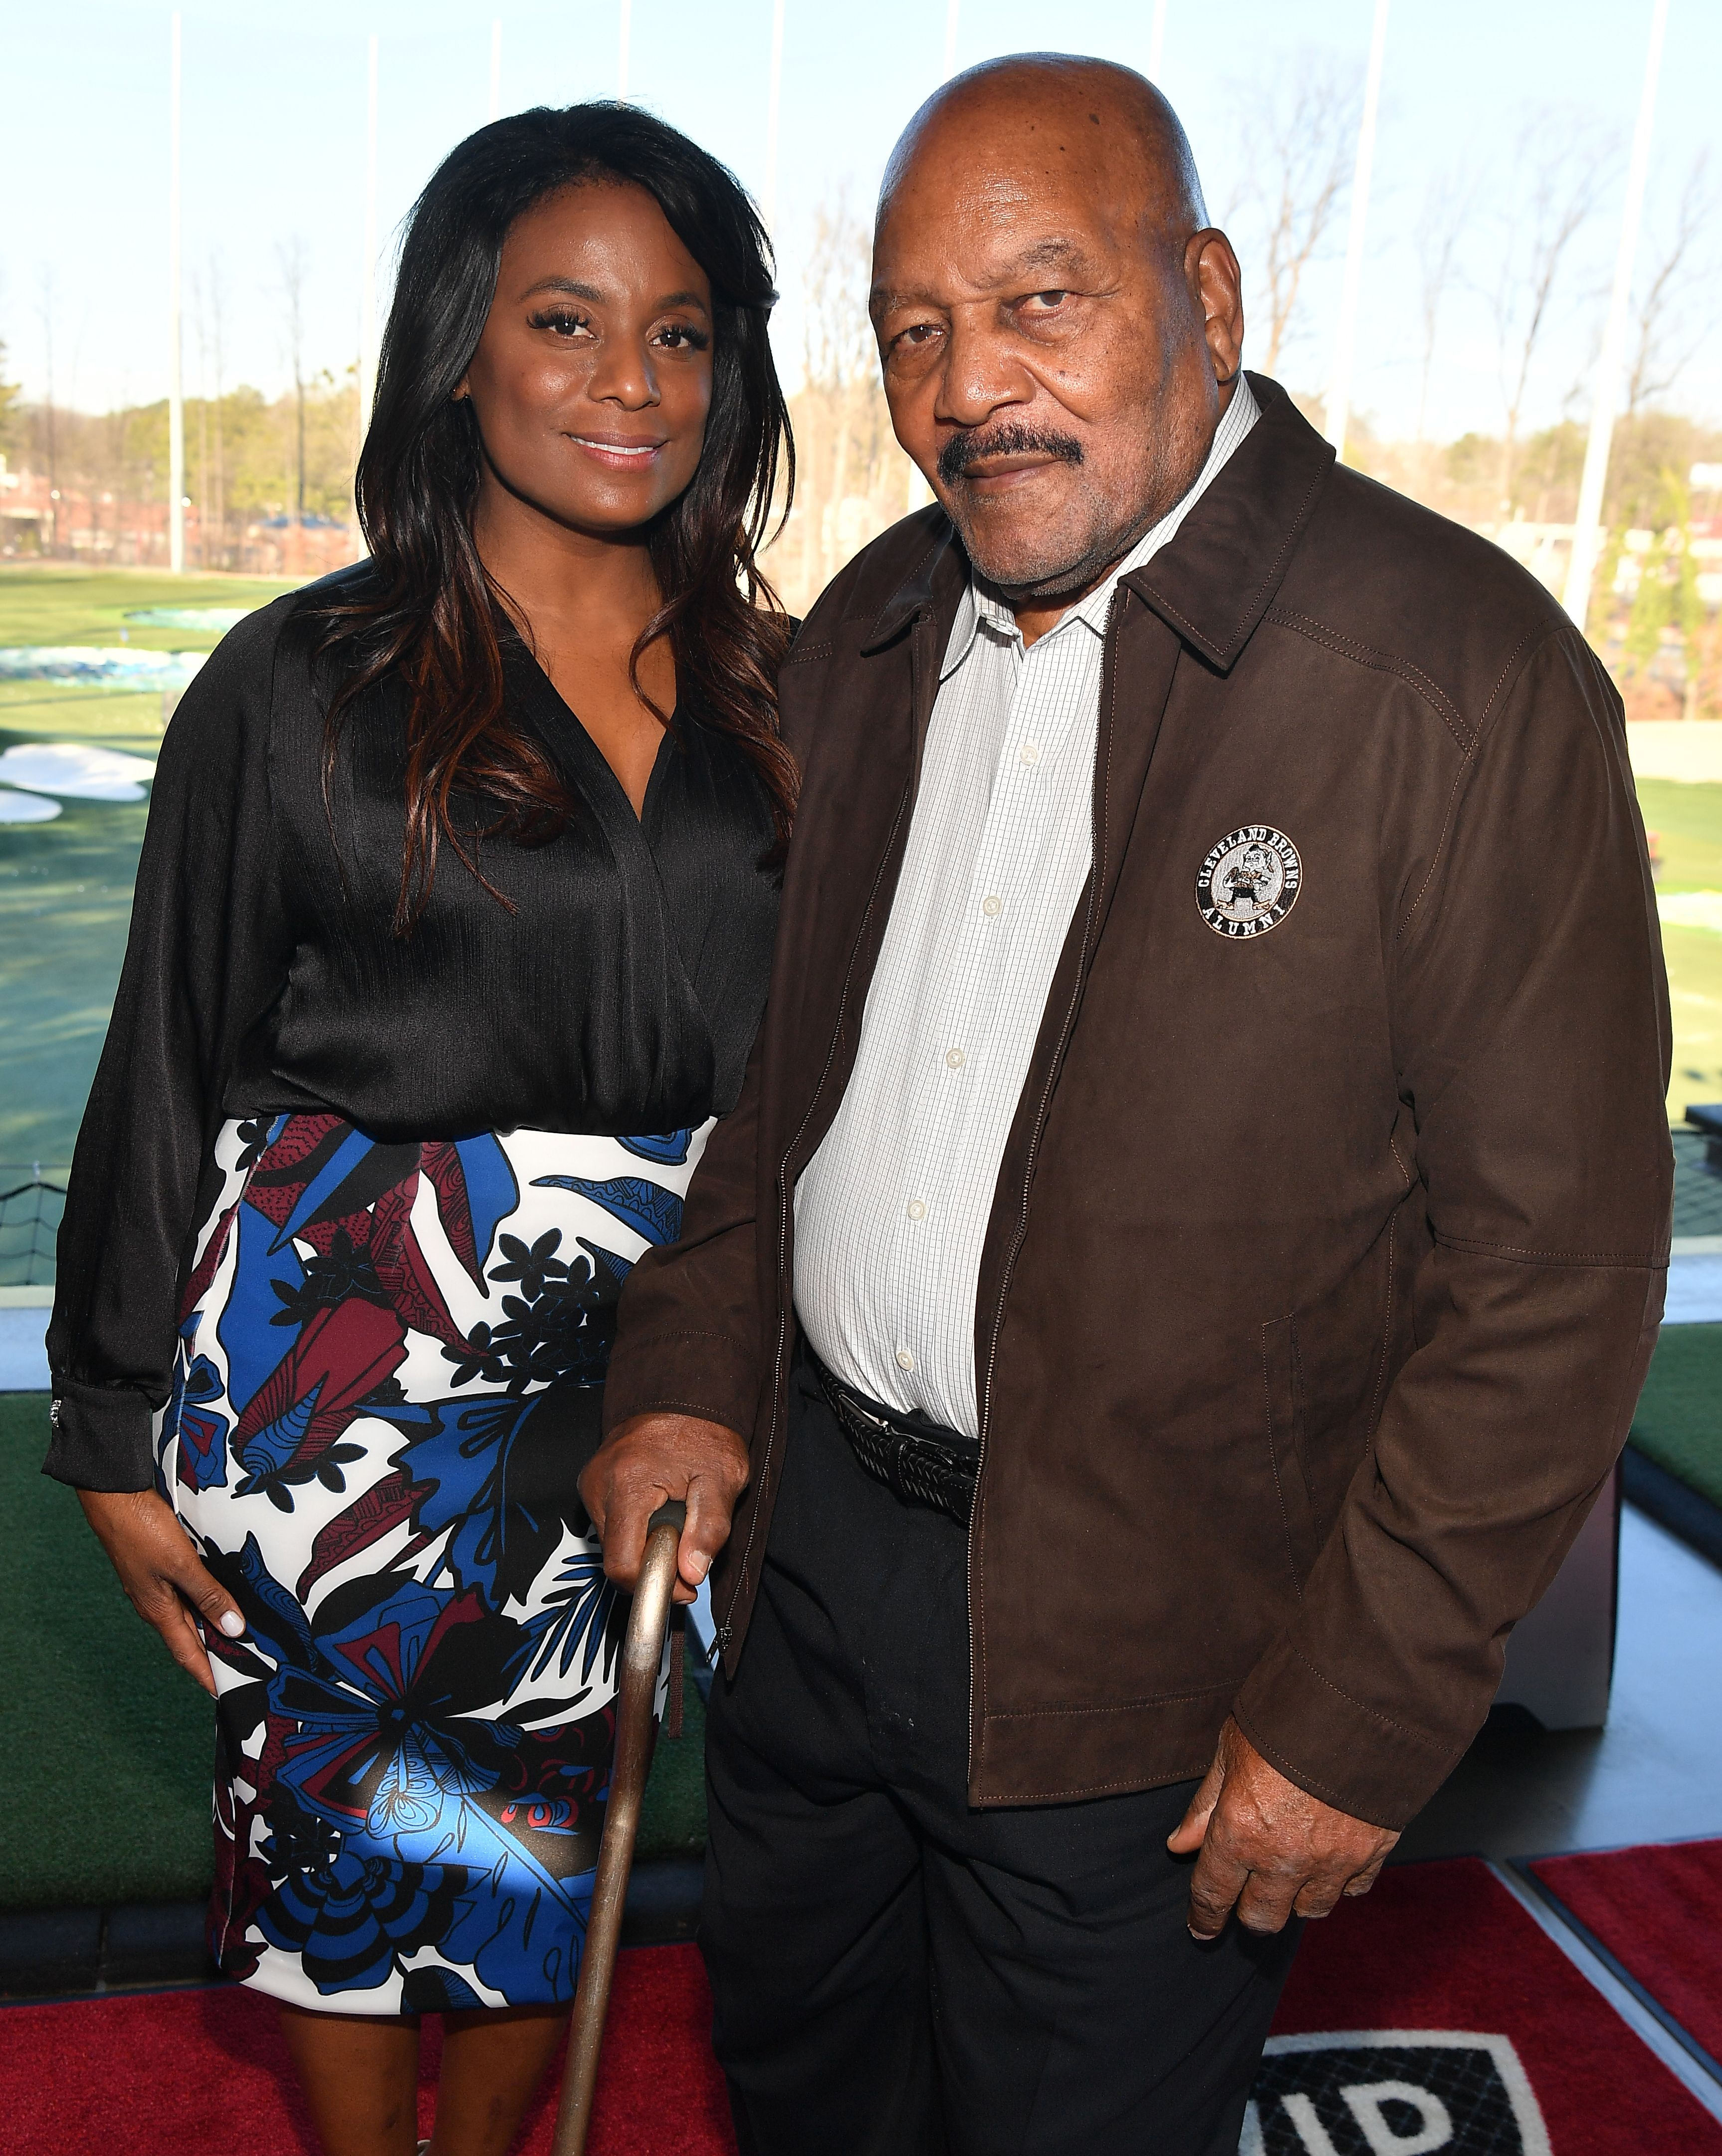 Jim Brown and his wife Monique Brown attend Jim Brown Legends of Football Golf Tournament at Topgolf Midtown on February 01, 2019 in Atlanta, Georgia | Source: Getty Images